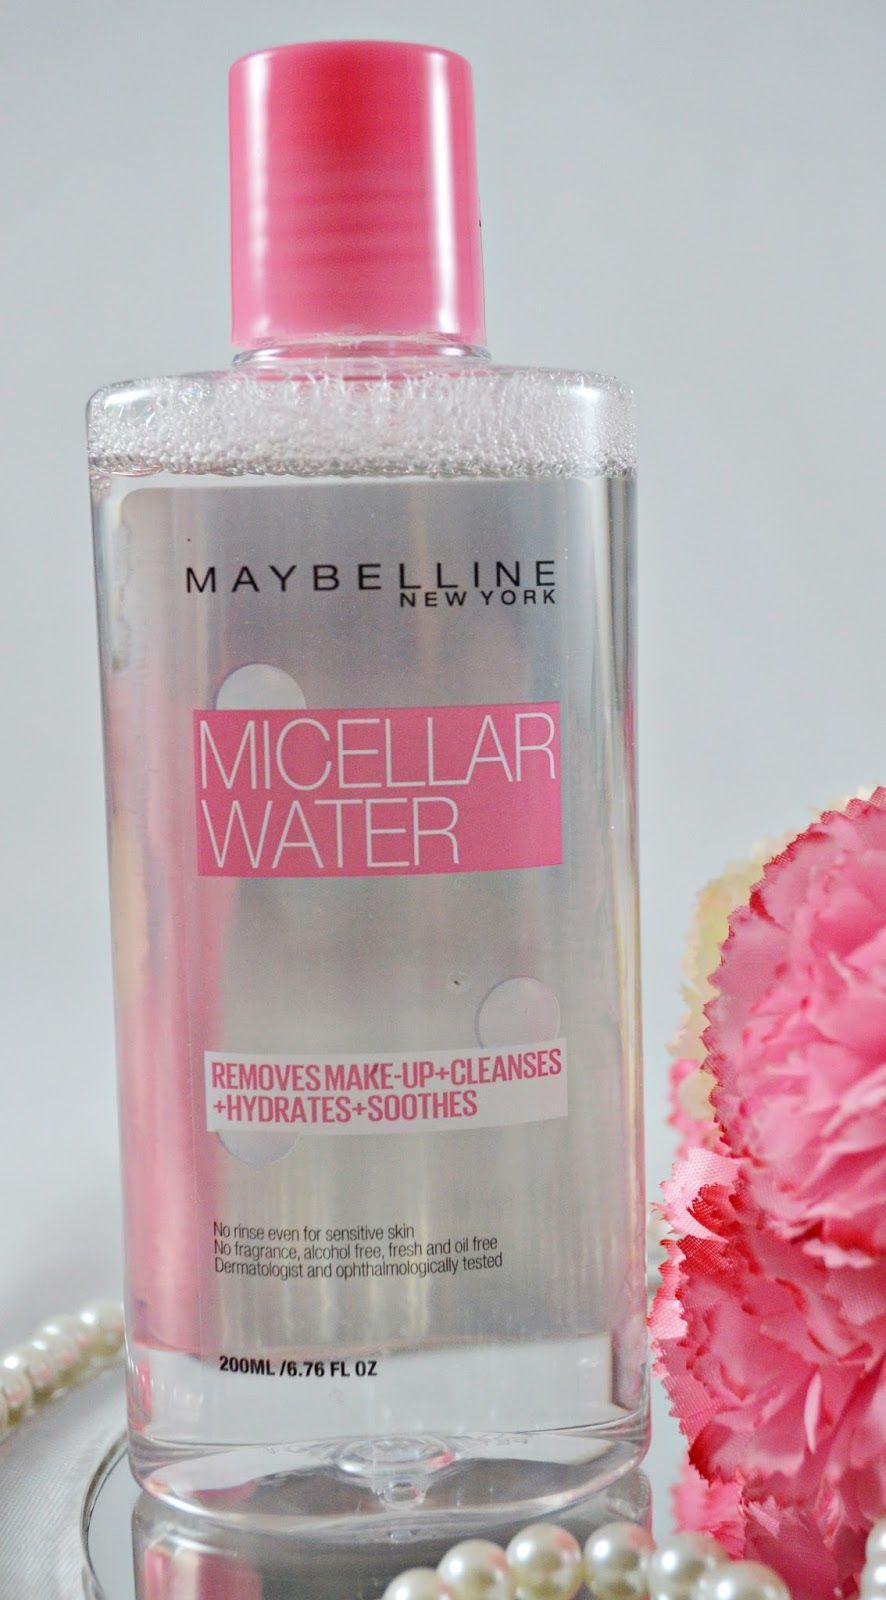 Maybelline Micellar Water Honest Review (With images